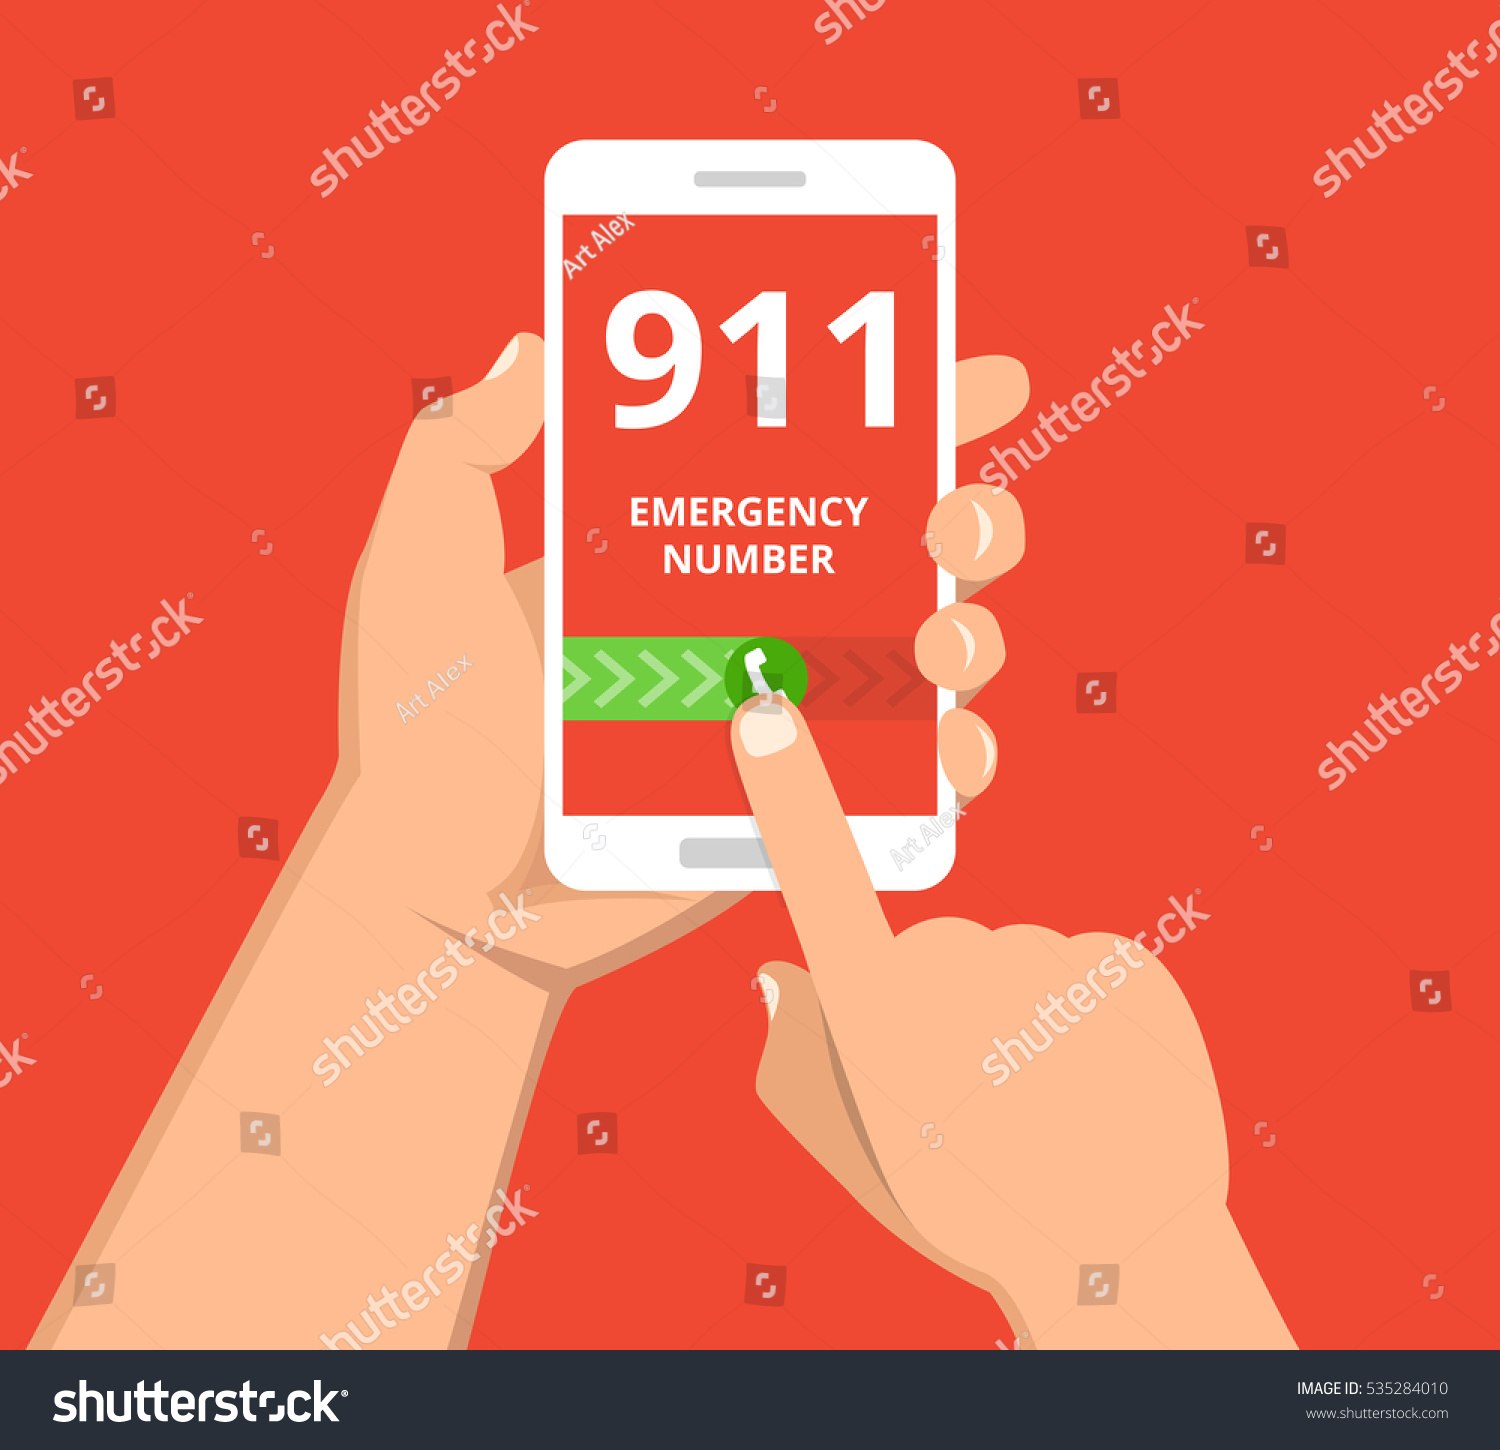 Emergency call 911 concept Hand holding mobile phone with emergency number on the screen Flat vector illustration